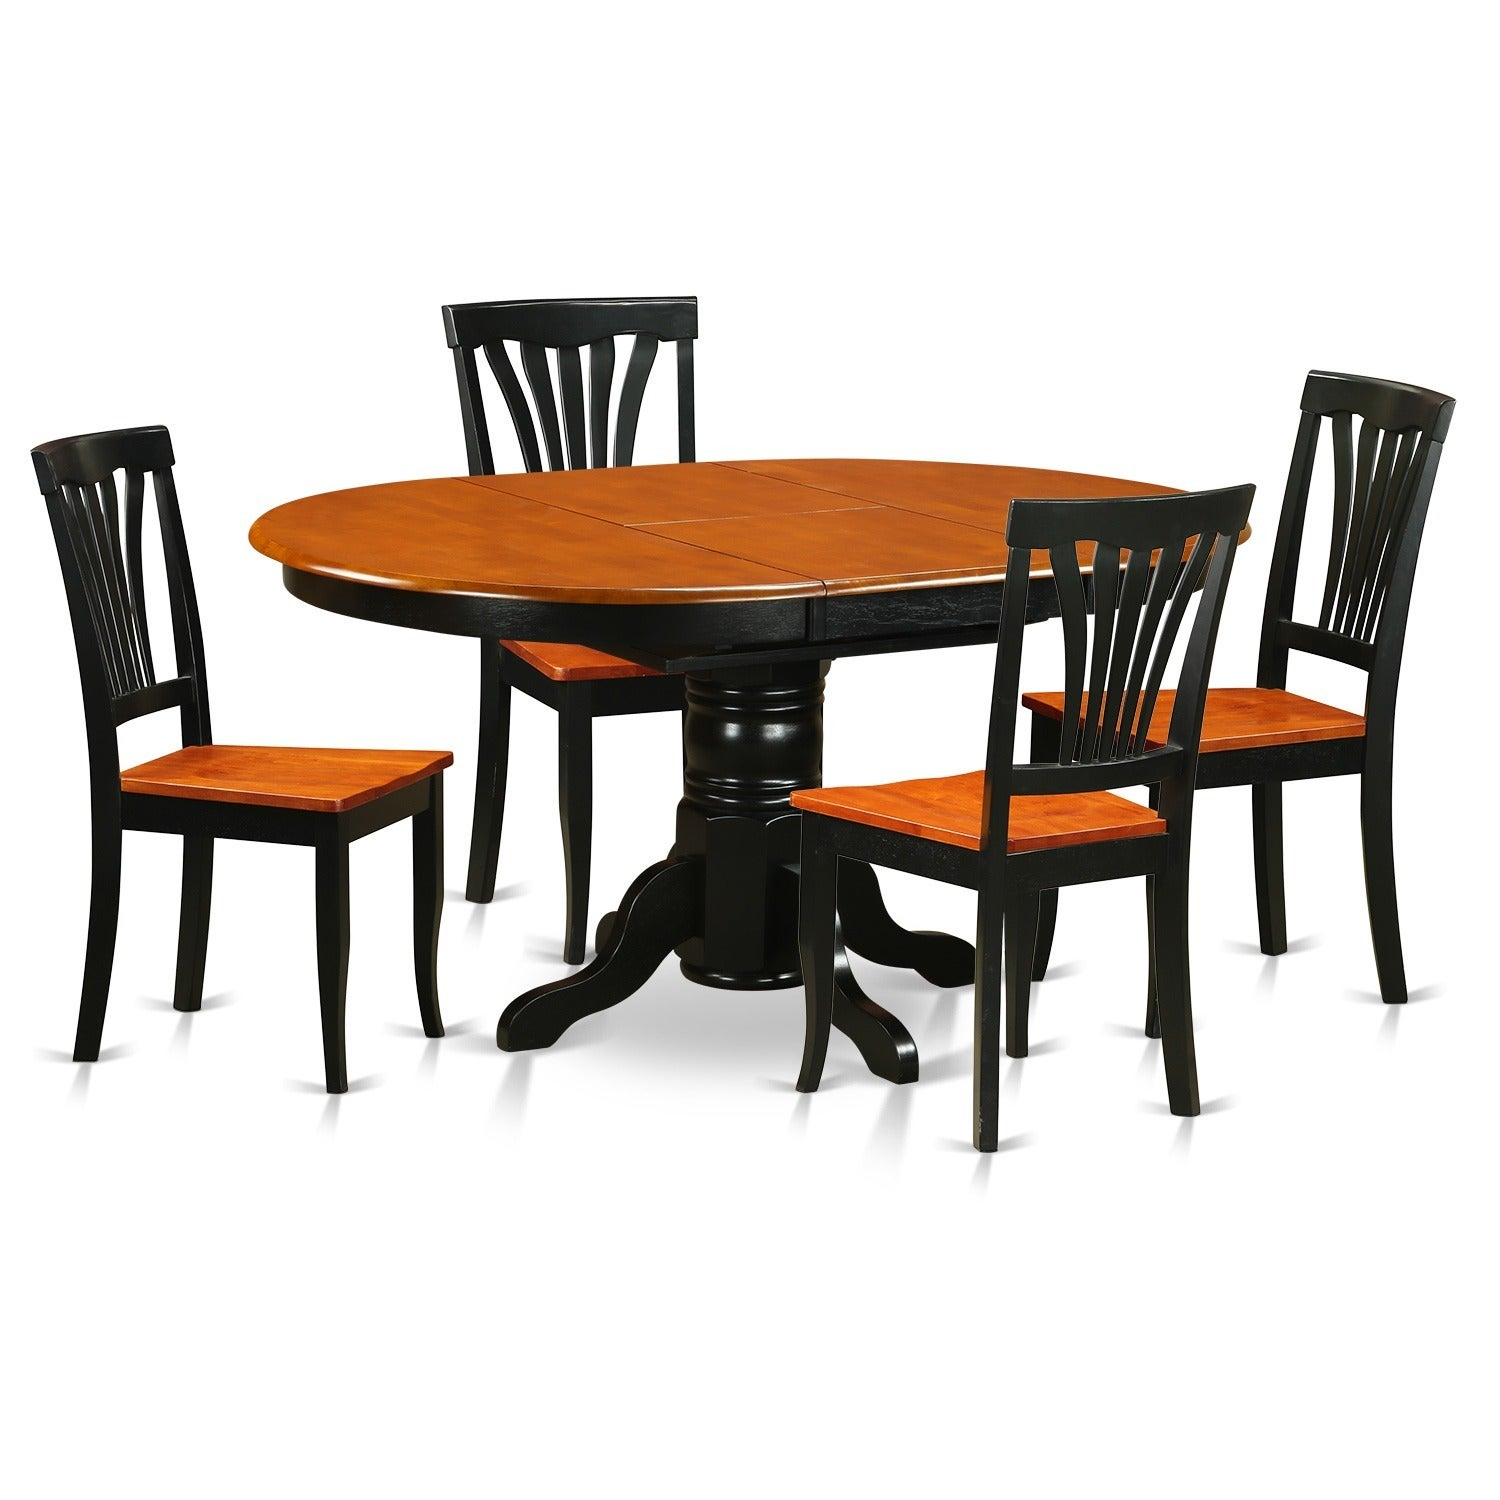 Oval Dining Room Table With Leaves